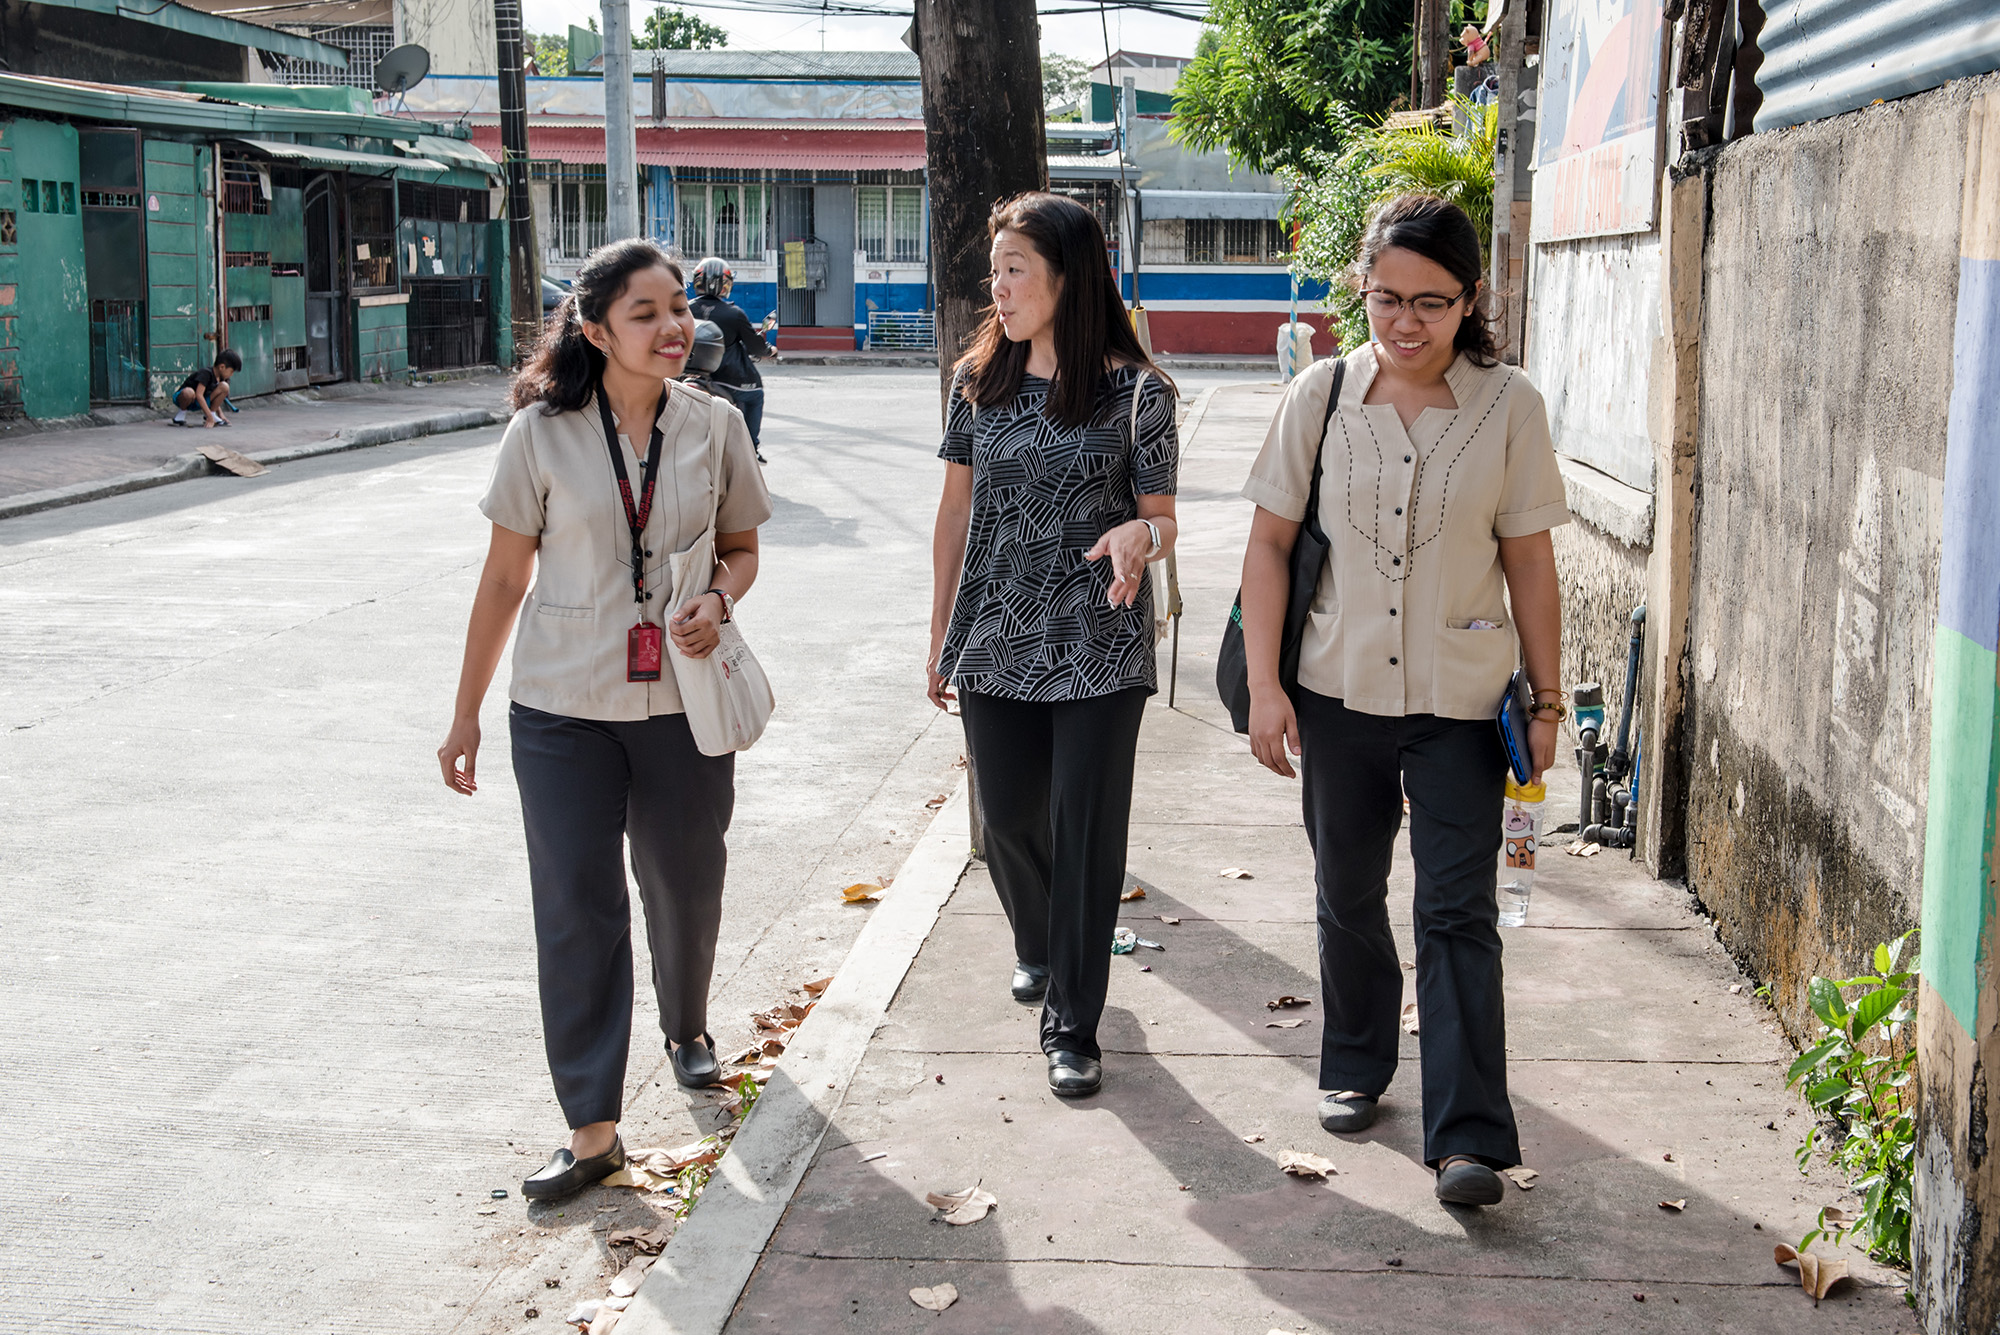 Teach For America – Hawai'i Executive Director Jill Murakami-Baldemor with 2018 Marikina City Teacher Fellows Jen Clemente and Edz Lebrino on their to a student's house near Concepcion Elementary School